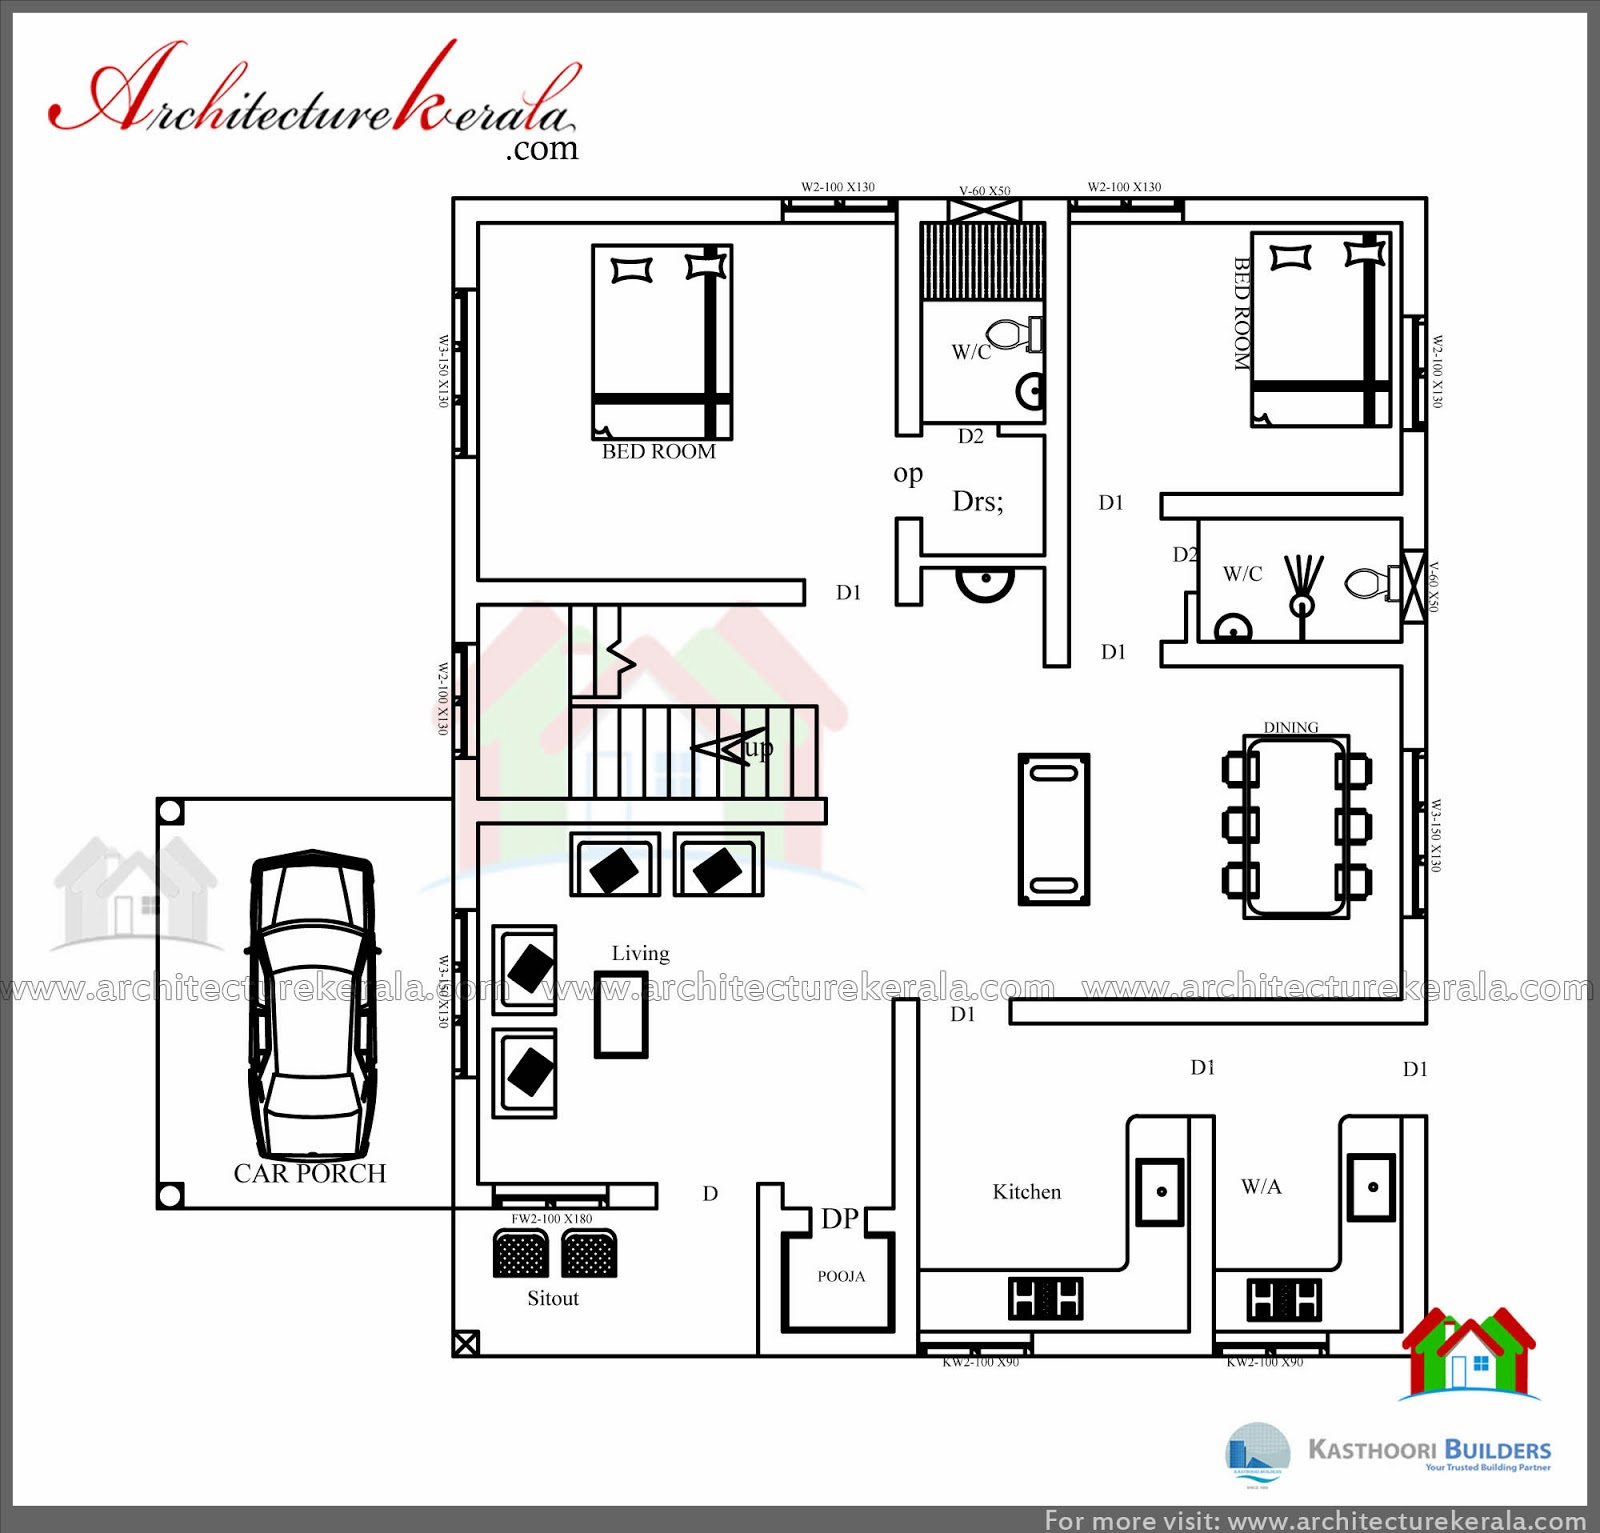 Kerala Model Home Plans: Low Cost 3 Bedroom Kerala House Plan With Elevation